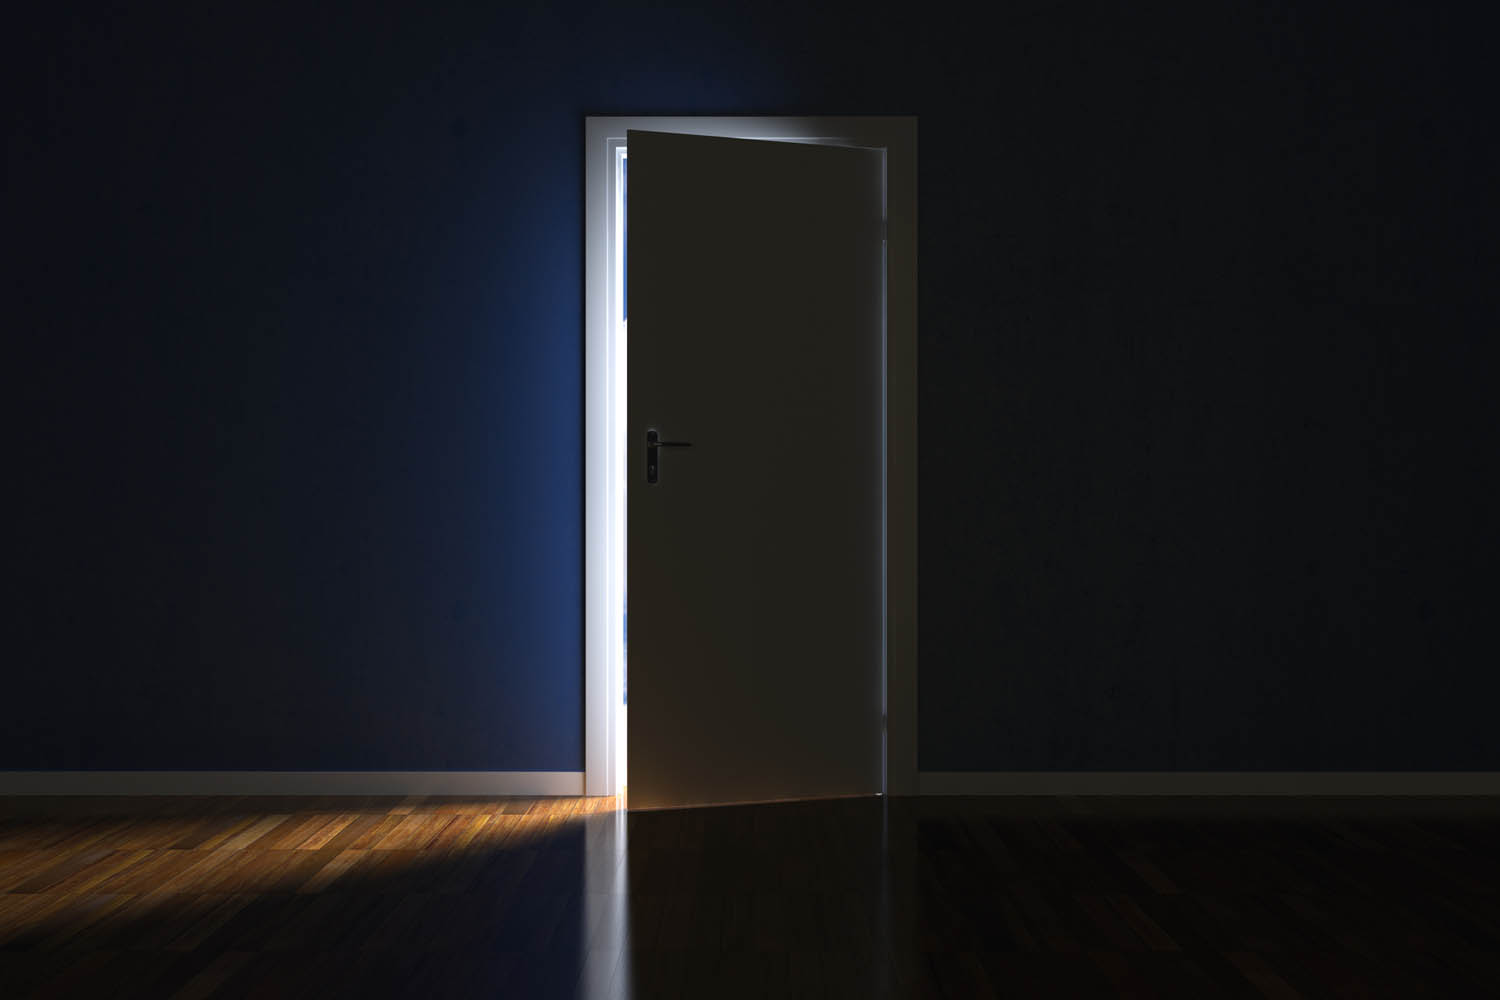 image of a slightly open door with light creeping into home